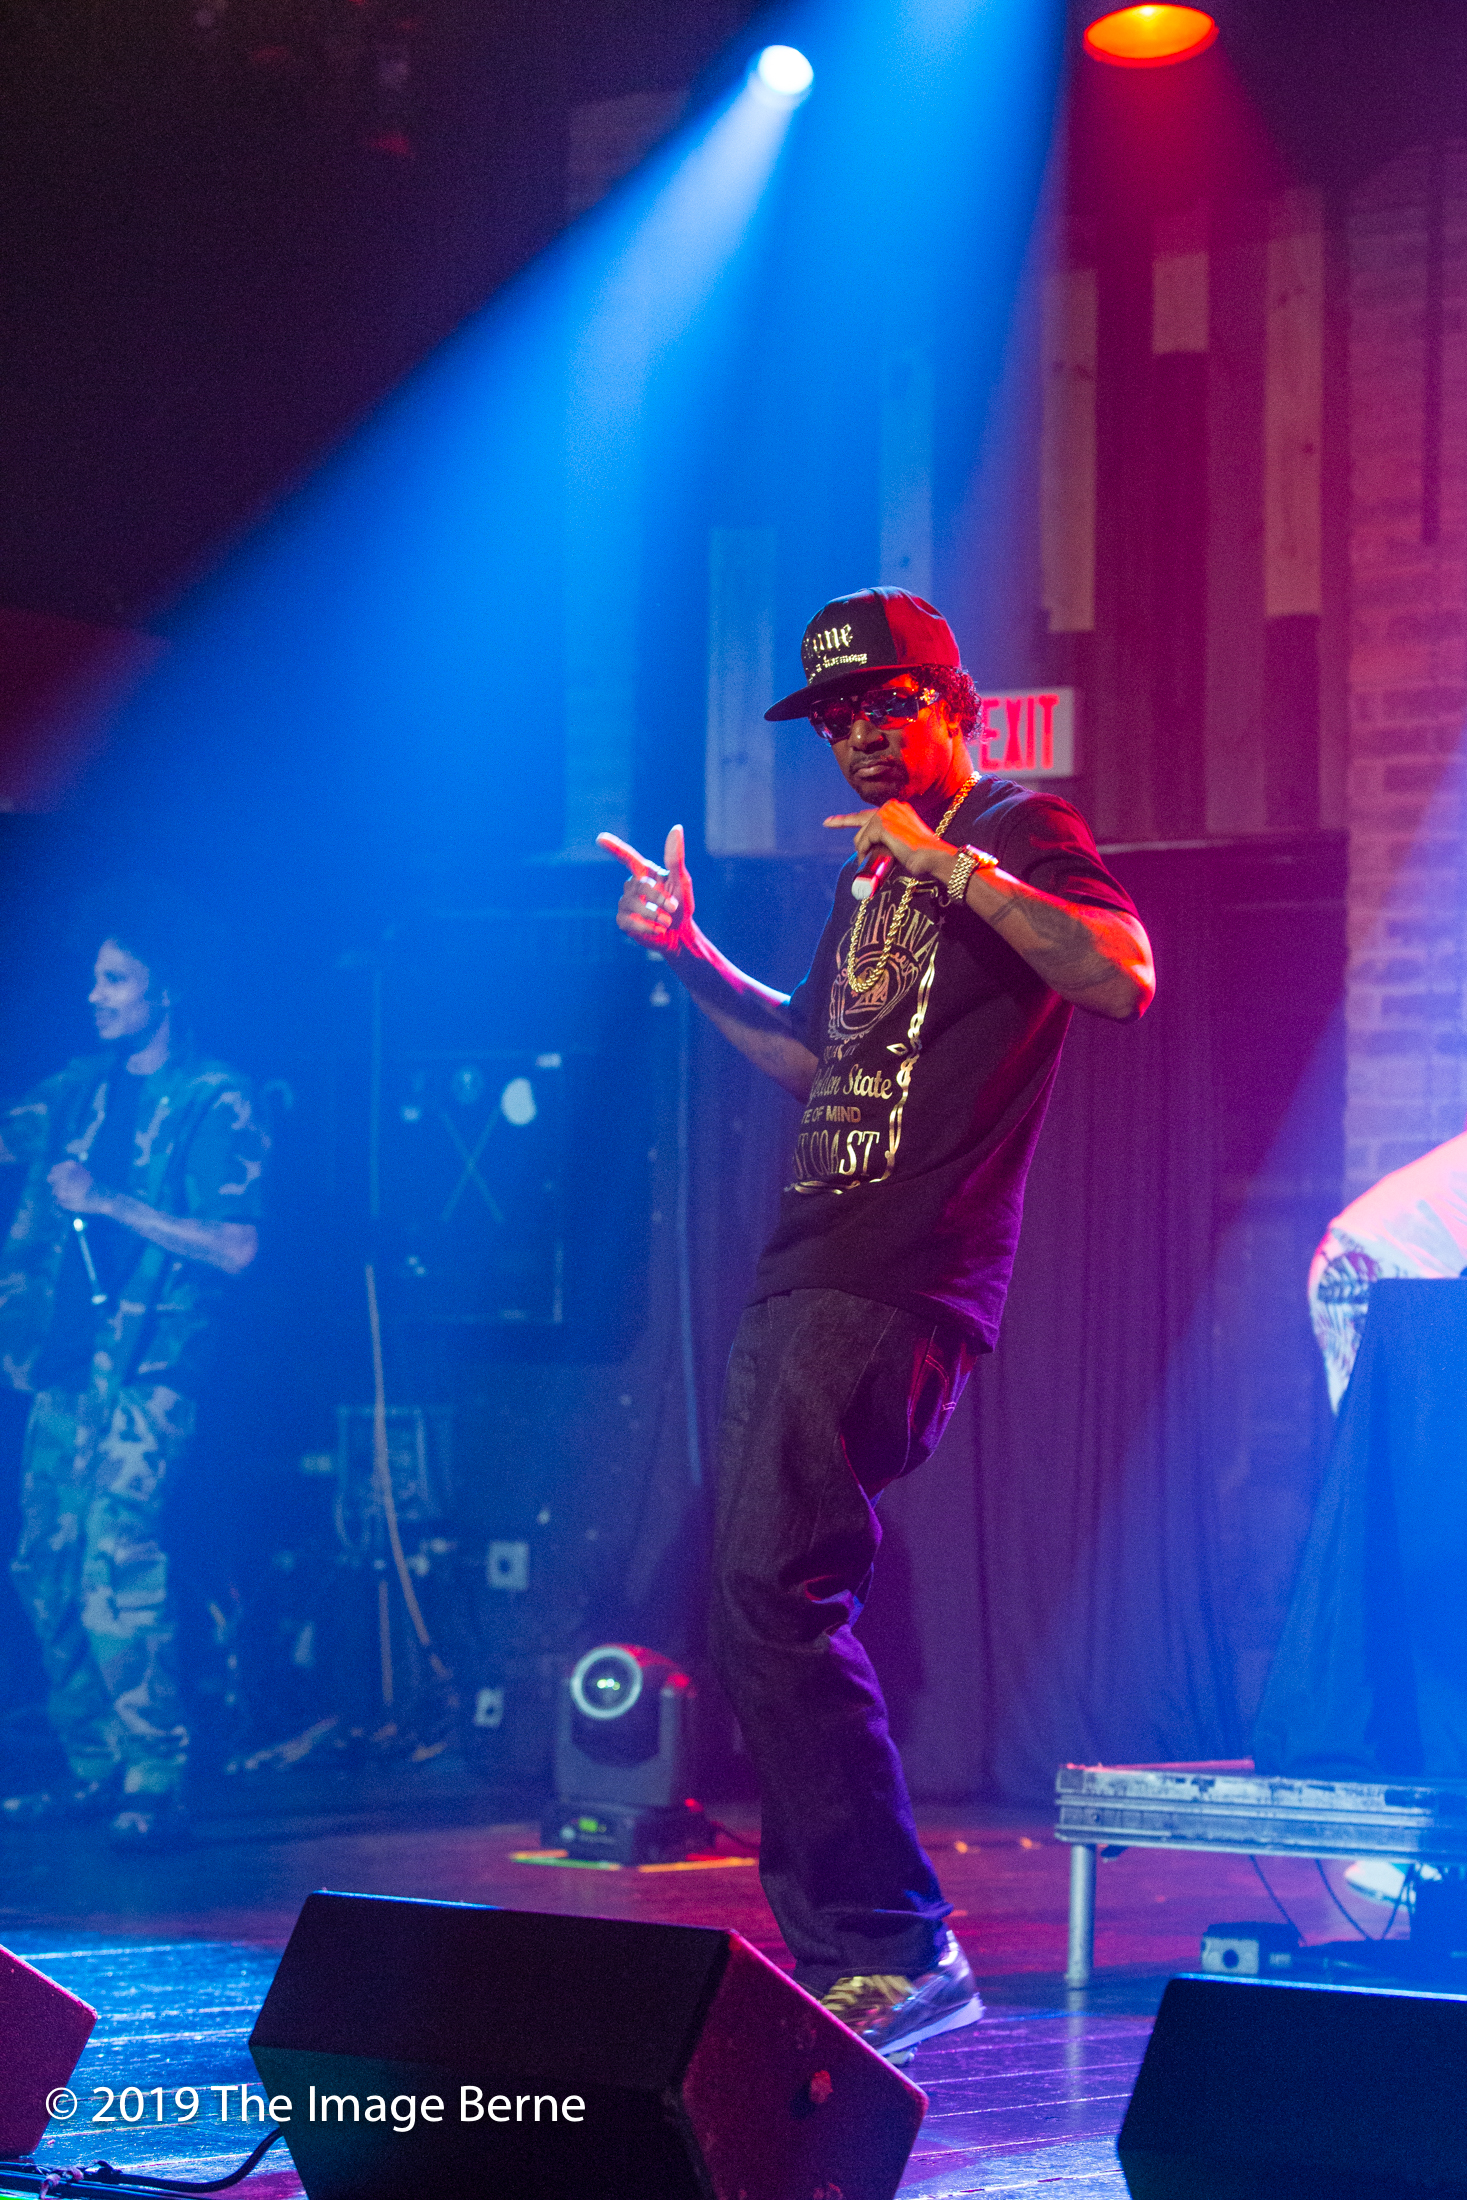 Krayzie Bone, Wish Bone, Flesh-N-Bone, Layzie Bone, and Bizzy Bone-014.jpg